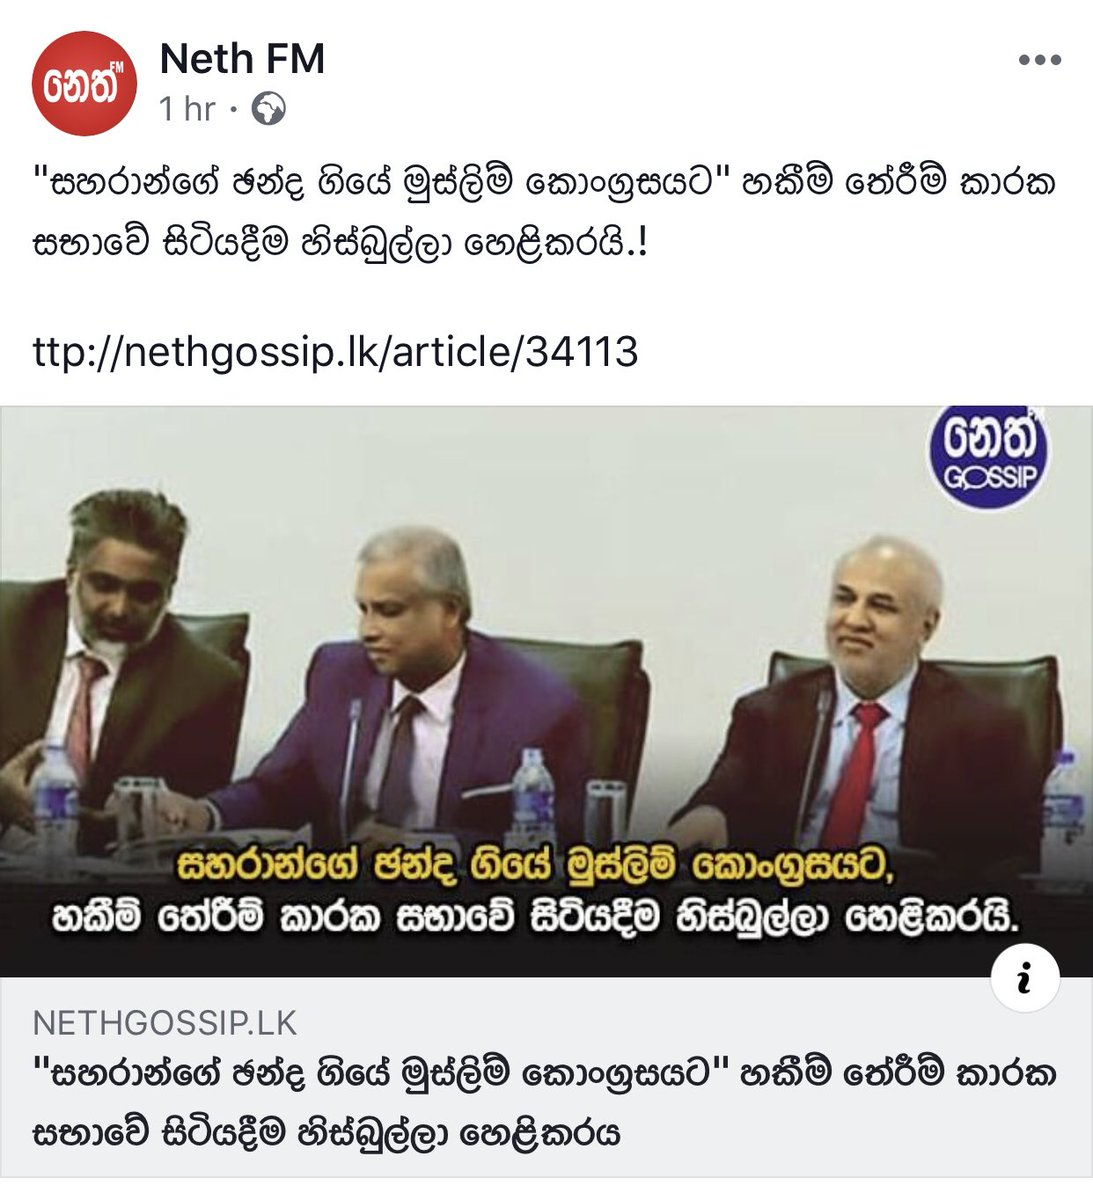 Saharan supported SLMC in 2015 elections-Hisbulla @groundviews @akeenan23 @Meerasrini Shouldn't SLMC leader @Rauff_Hakeem be questioned by PSC as well! Oh wait, hes part of the PSC 😂 #lka #EasterSundayAttacksLK